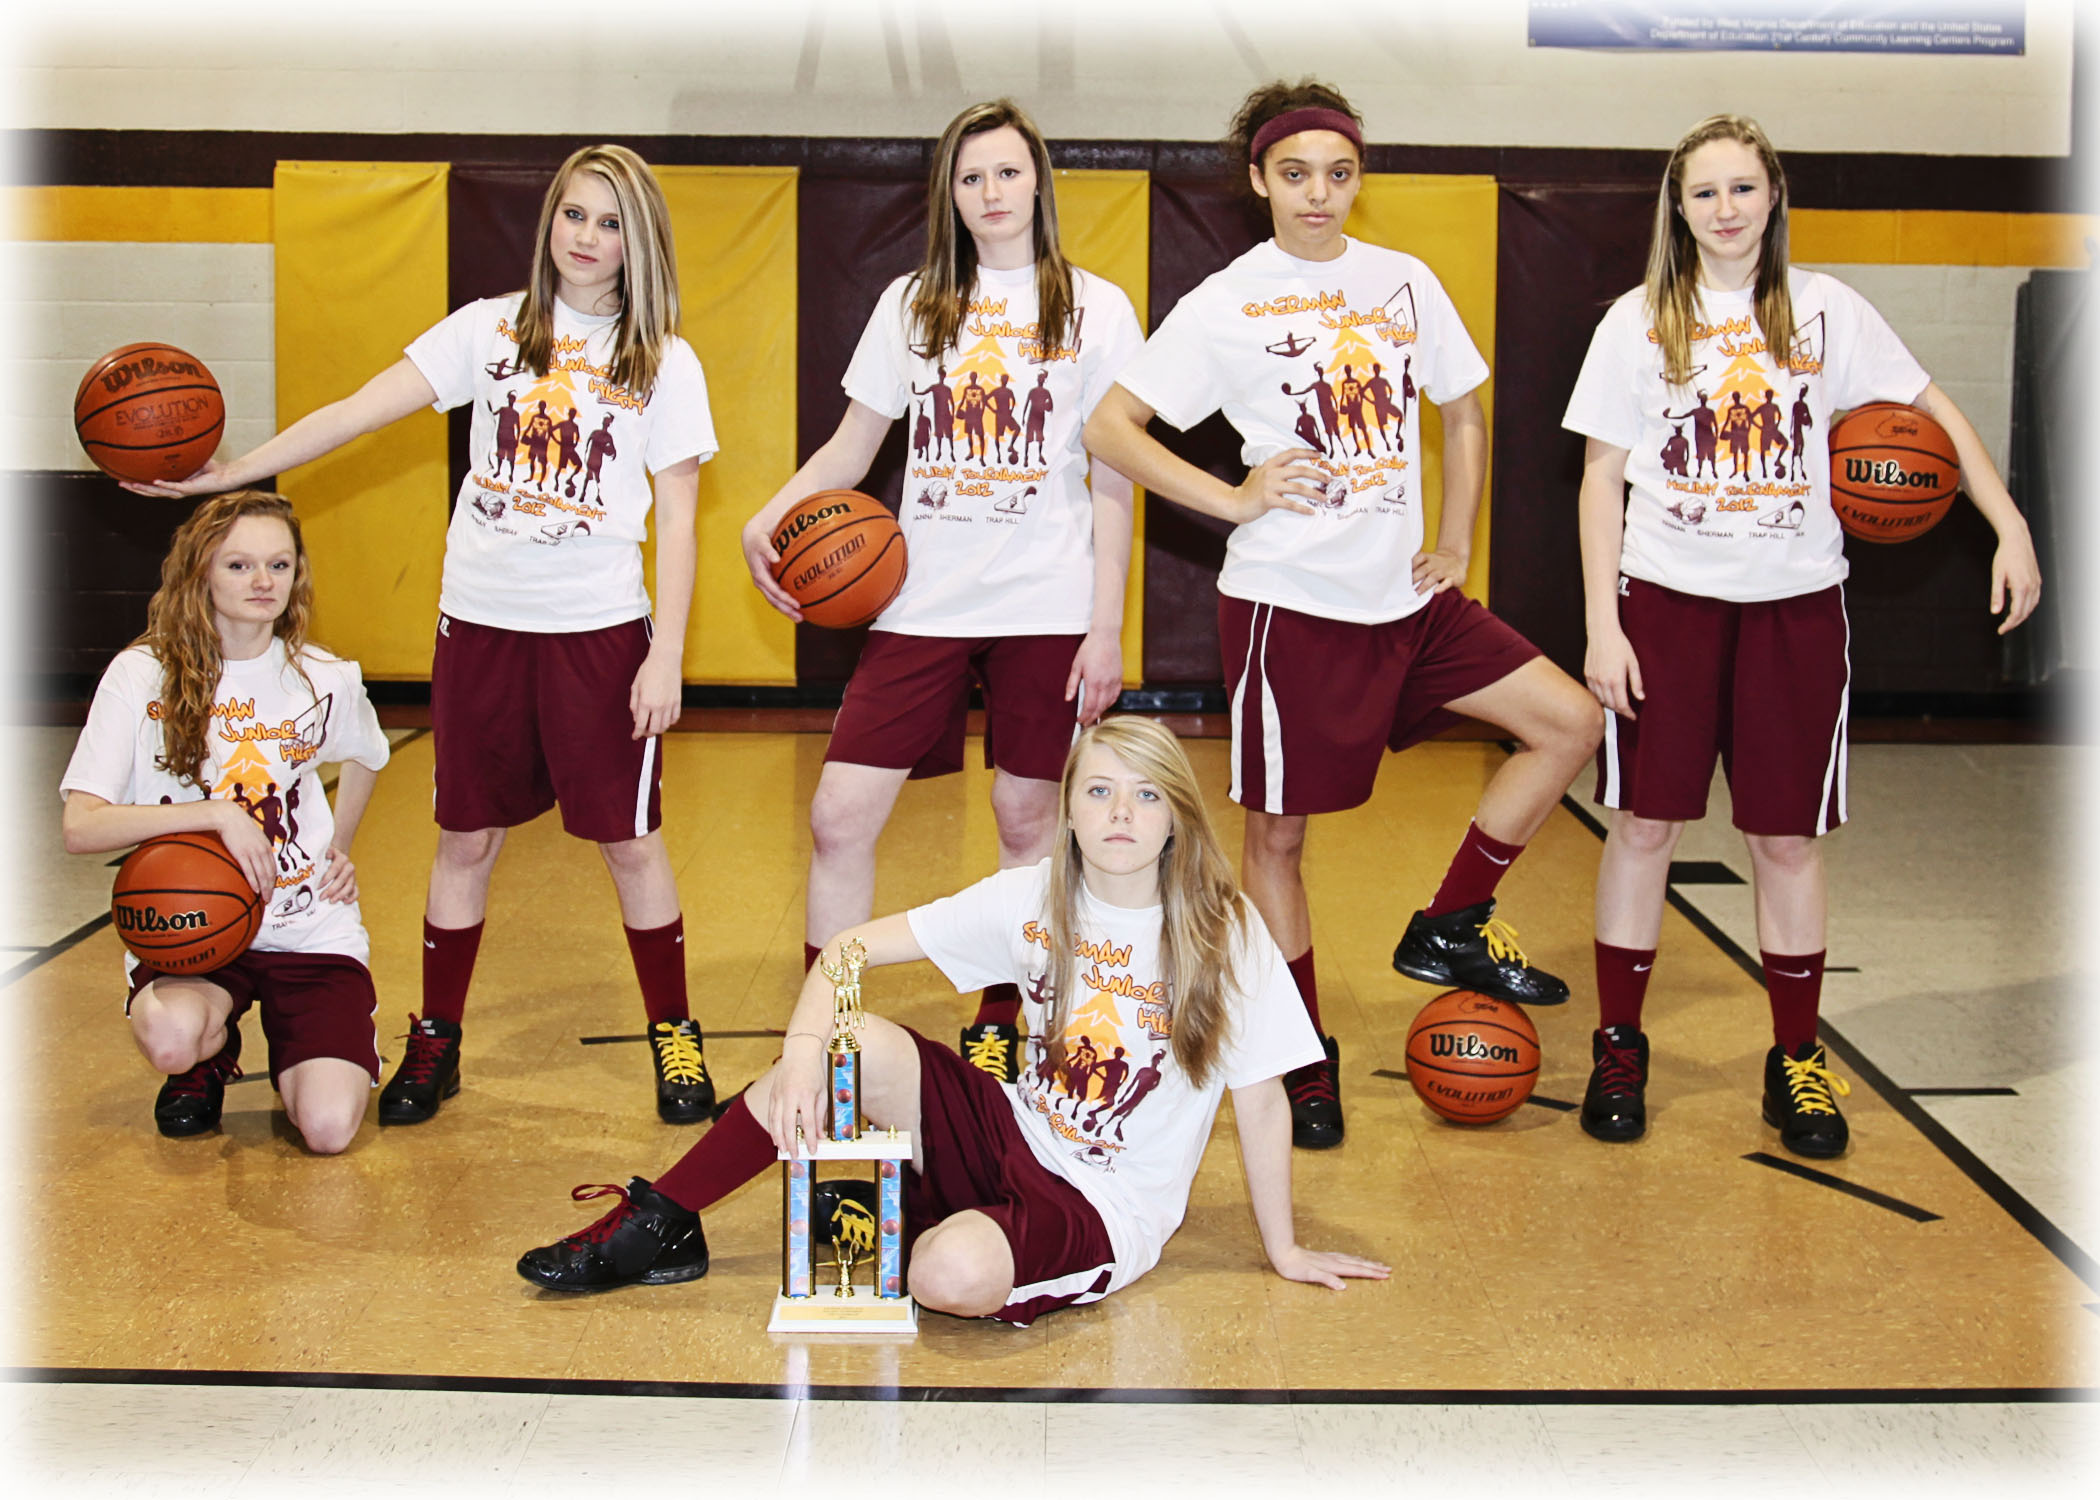 sherman junior high girls basketball t shirt photo - Basketball T Shirt Design Ideas